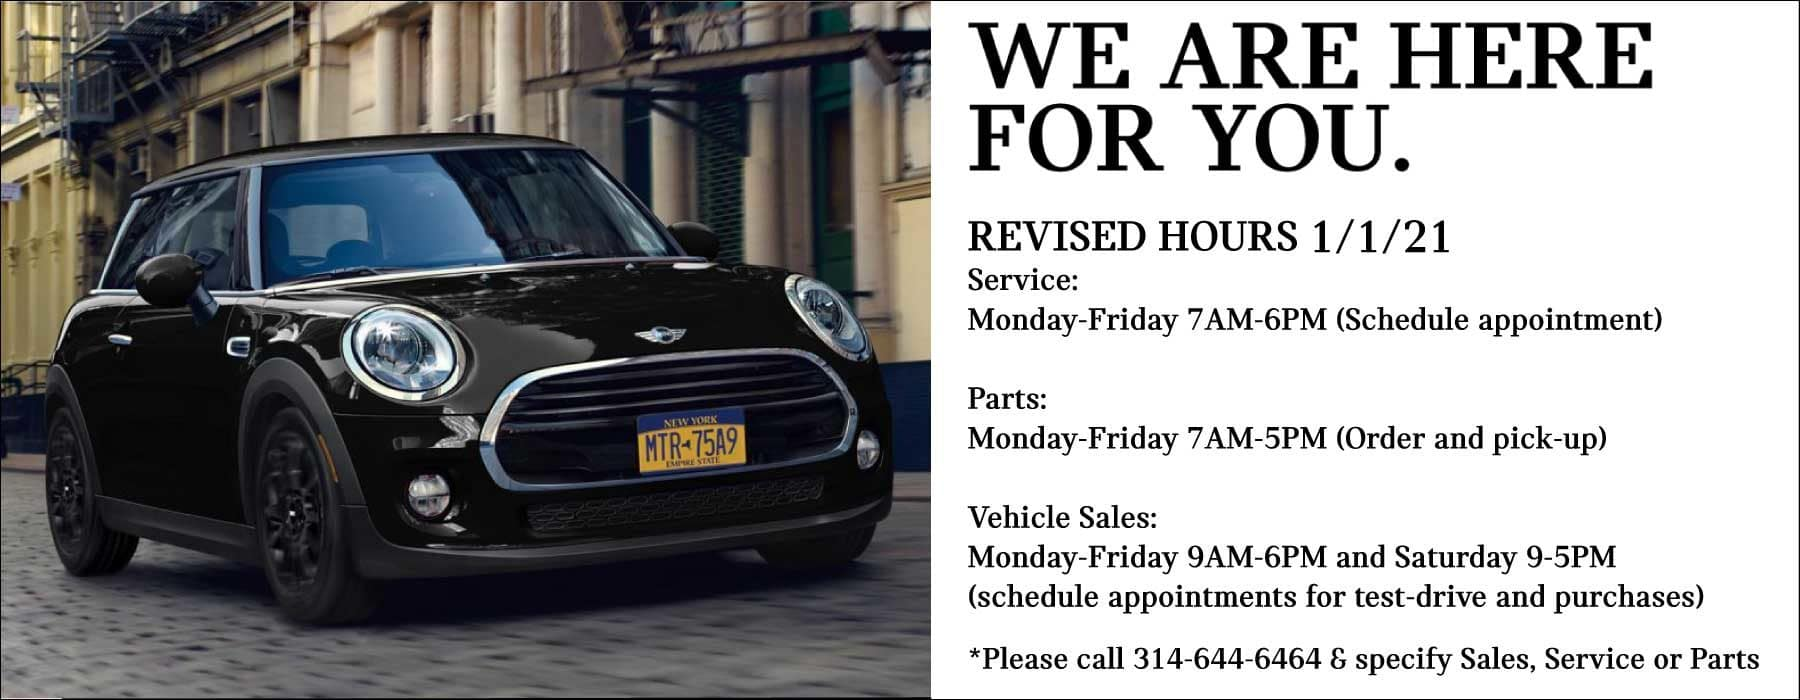 REVISED HOURS 1/1/21: Service: Monday-Friday 7AM-6PM (Schedule appointment) Parts: Monday-Friday 7AM-5PM (Order and pick-up) Vehicle Sales: Monday-Friday 9AM-6PM and Saturday 9-5PM (schedule appointments for test-drive and purchases)